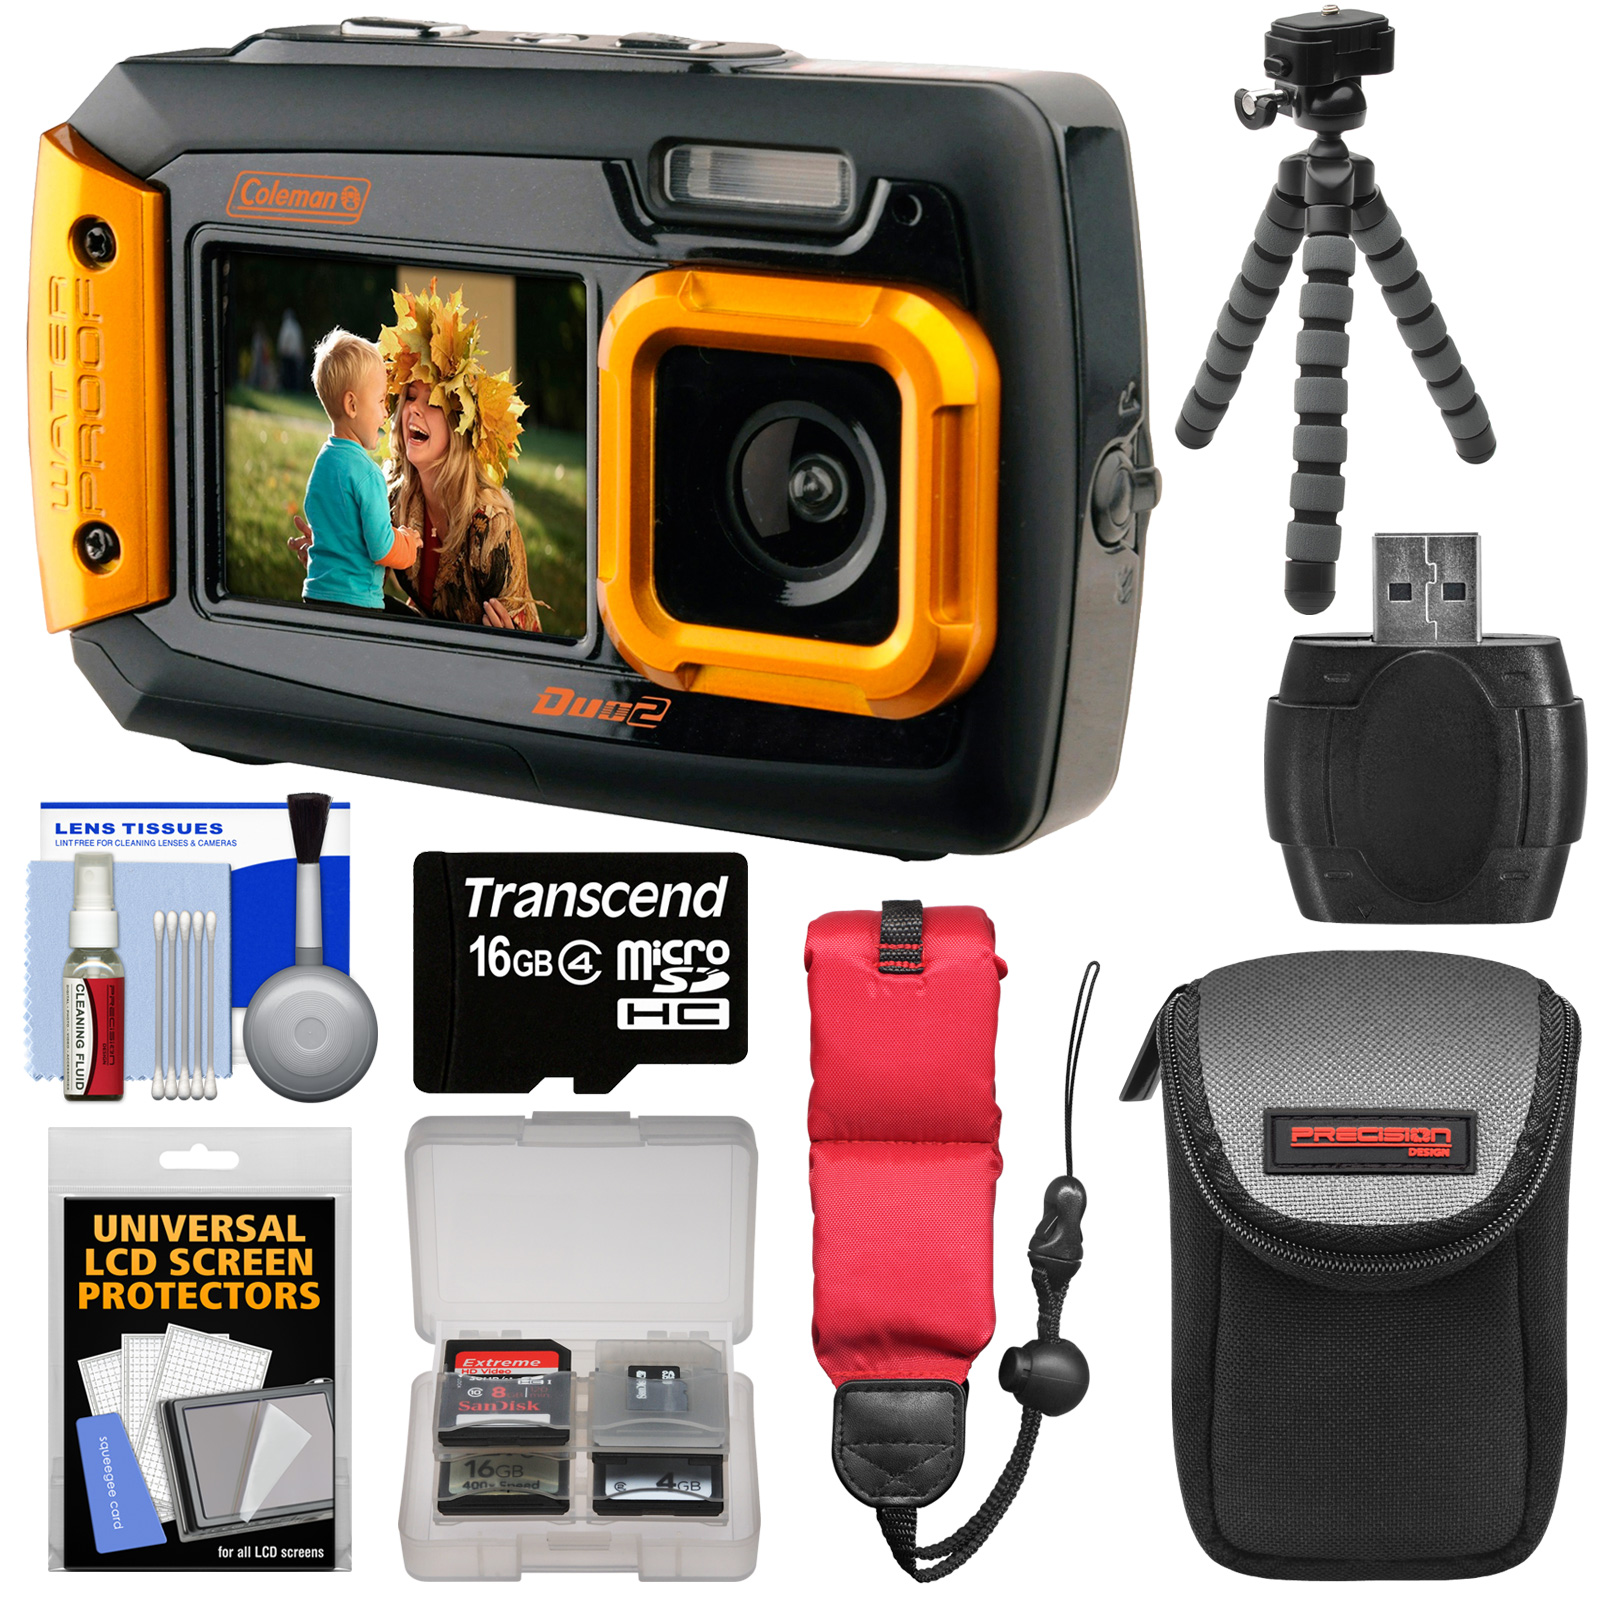 Coleman Duo 2V9WP Dual Screen Shock & Waterproof Digital Camera (Orange) with 16GB Card + Case + Float Strap + Flex Tripod + Kit